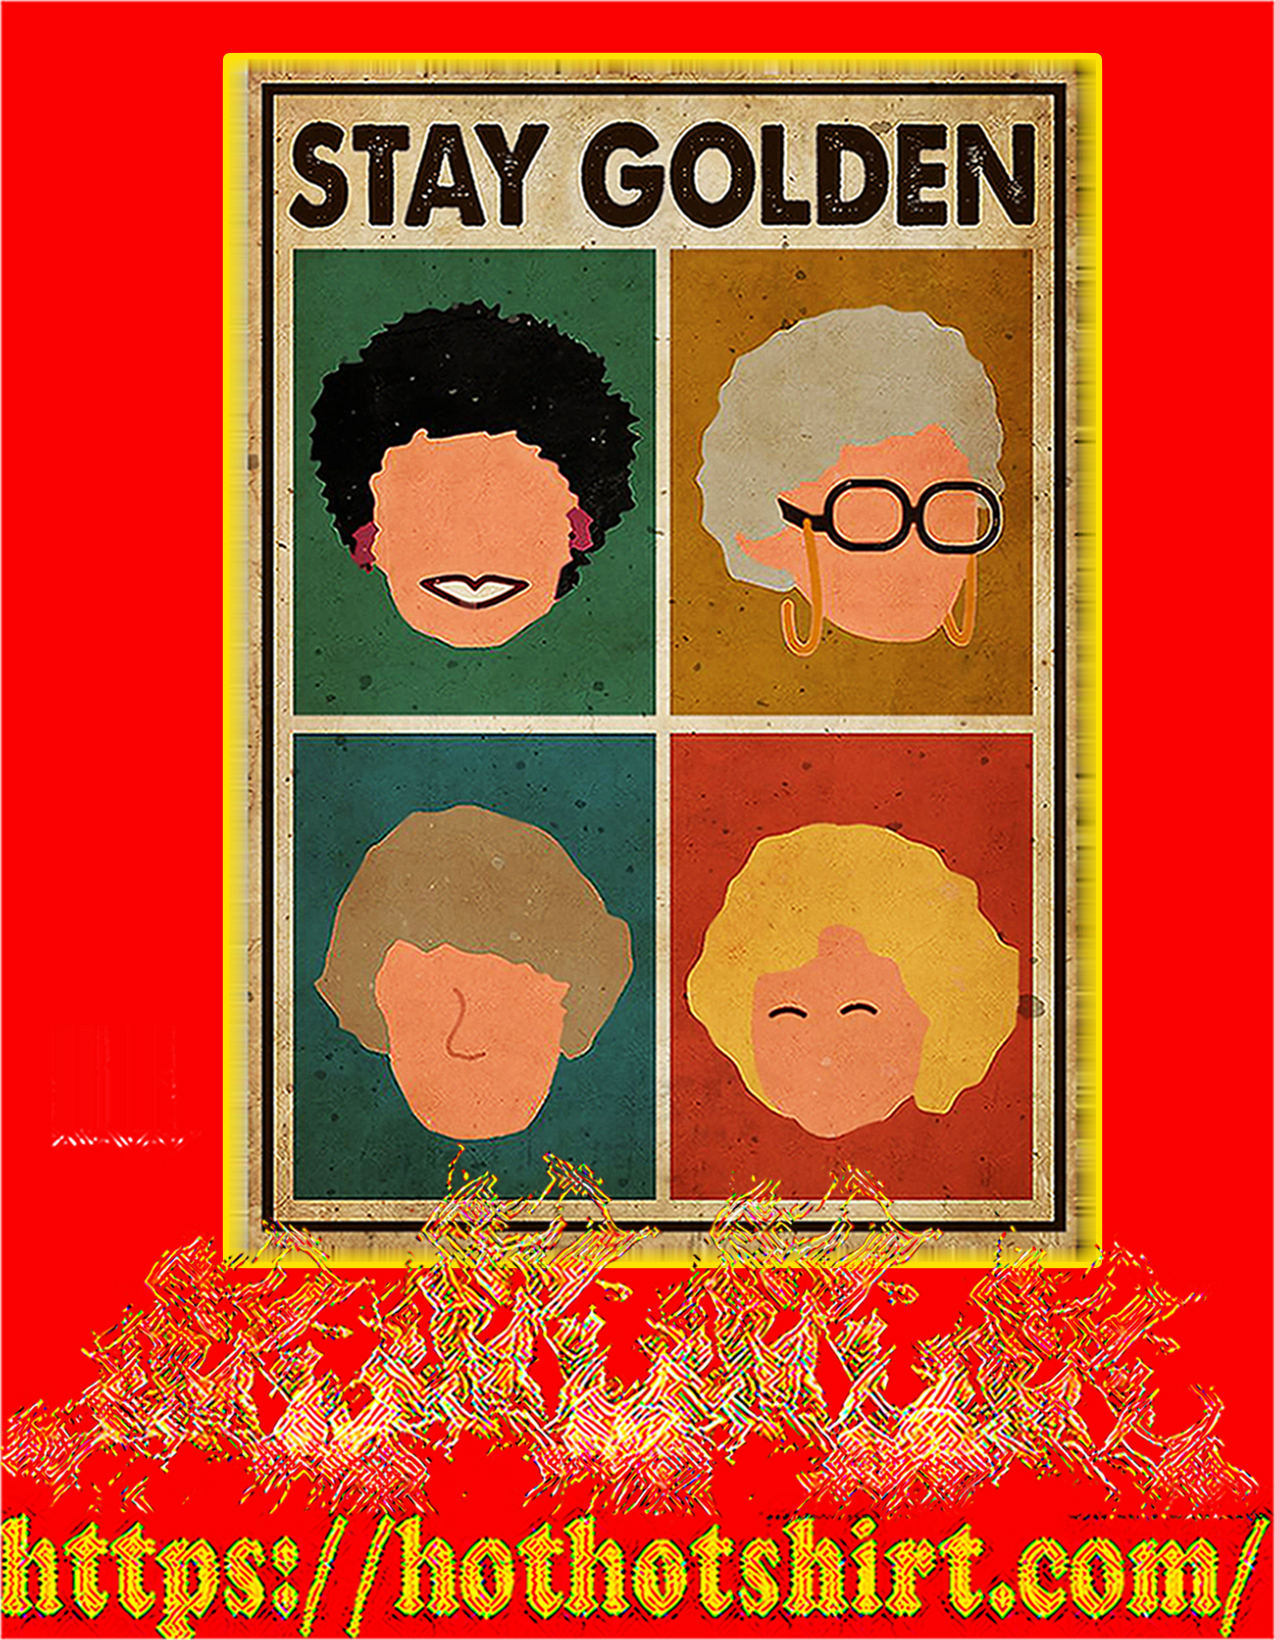 Stay golden poster - A2